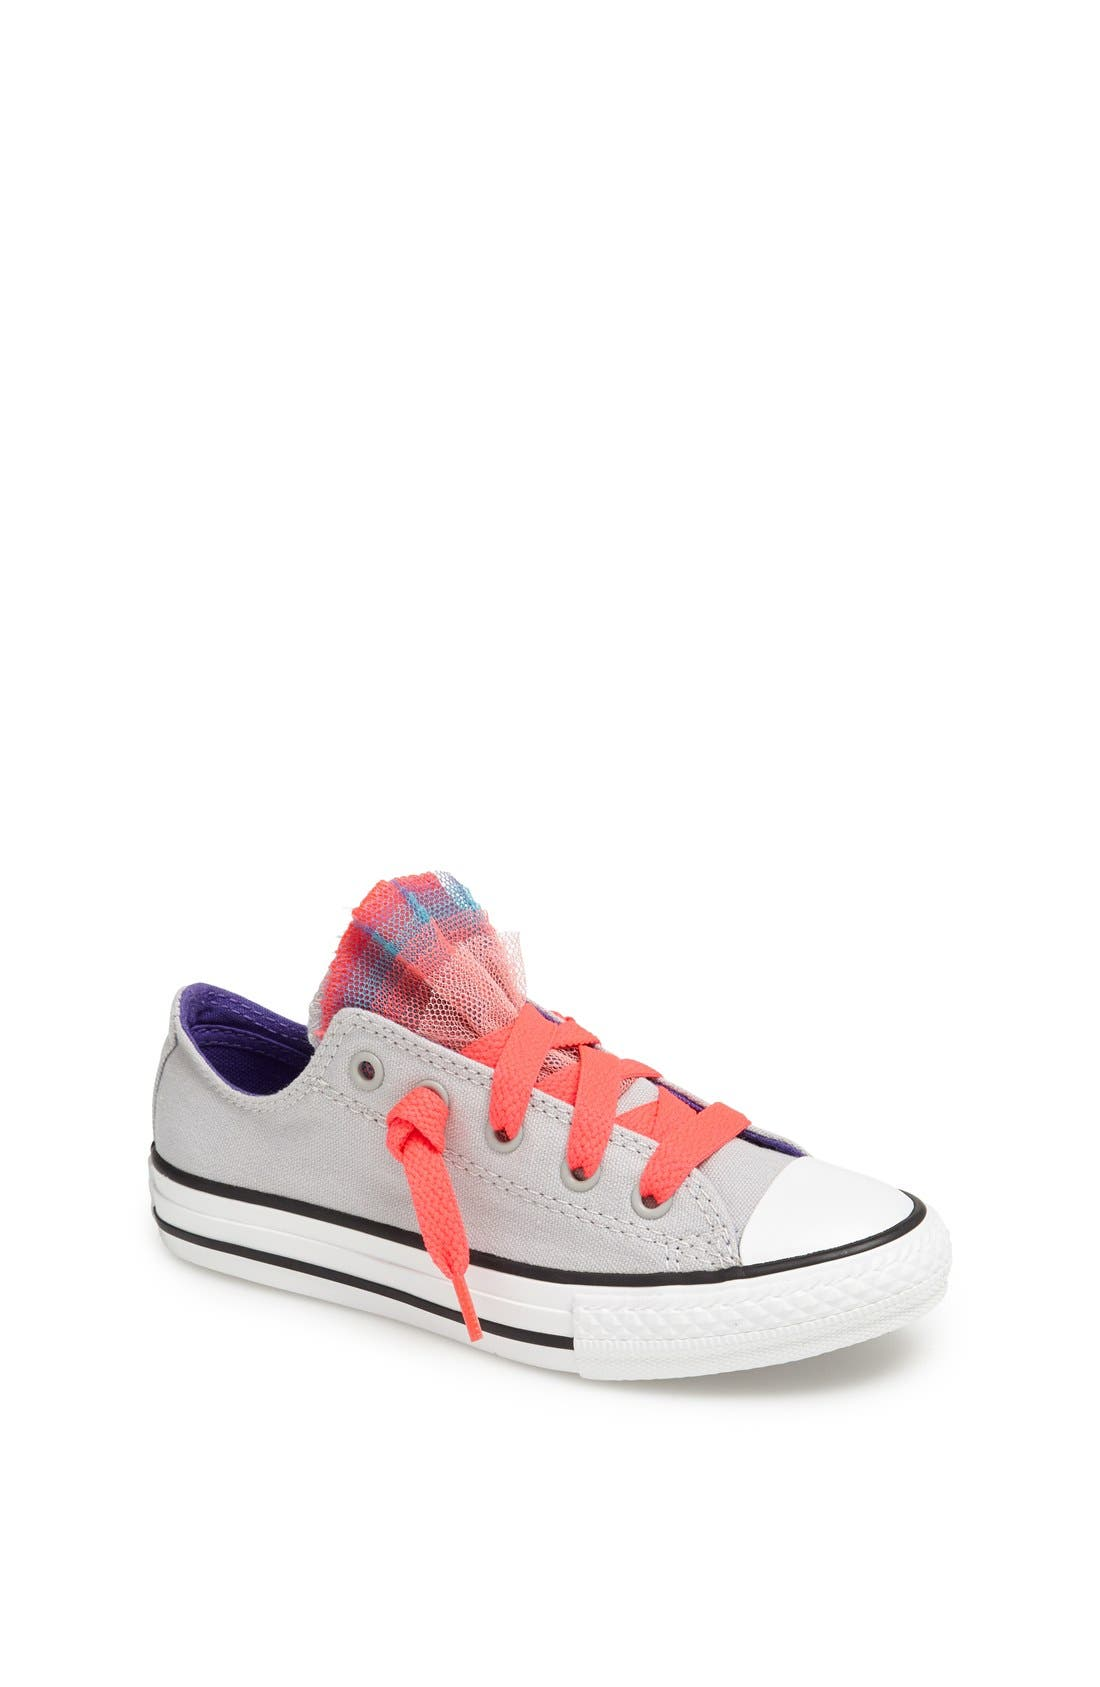 Alternate Image 1 Selected - Converse Chuck Taylor® All Star® 'Party' Sneaker (Toddler, Little Kid & Big Kid)